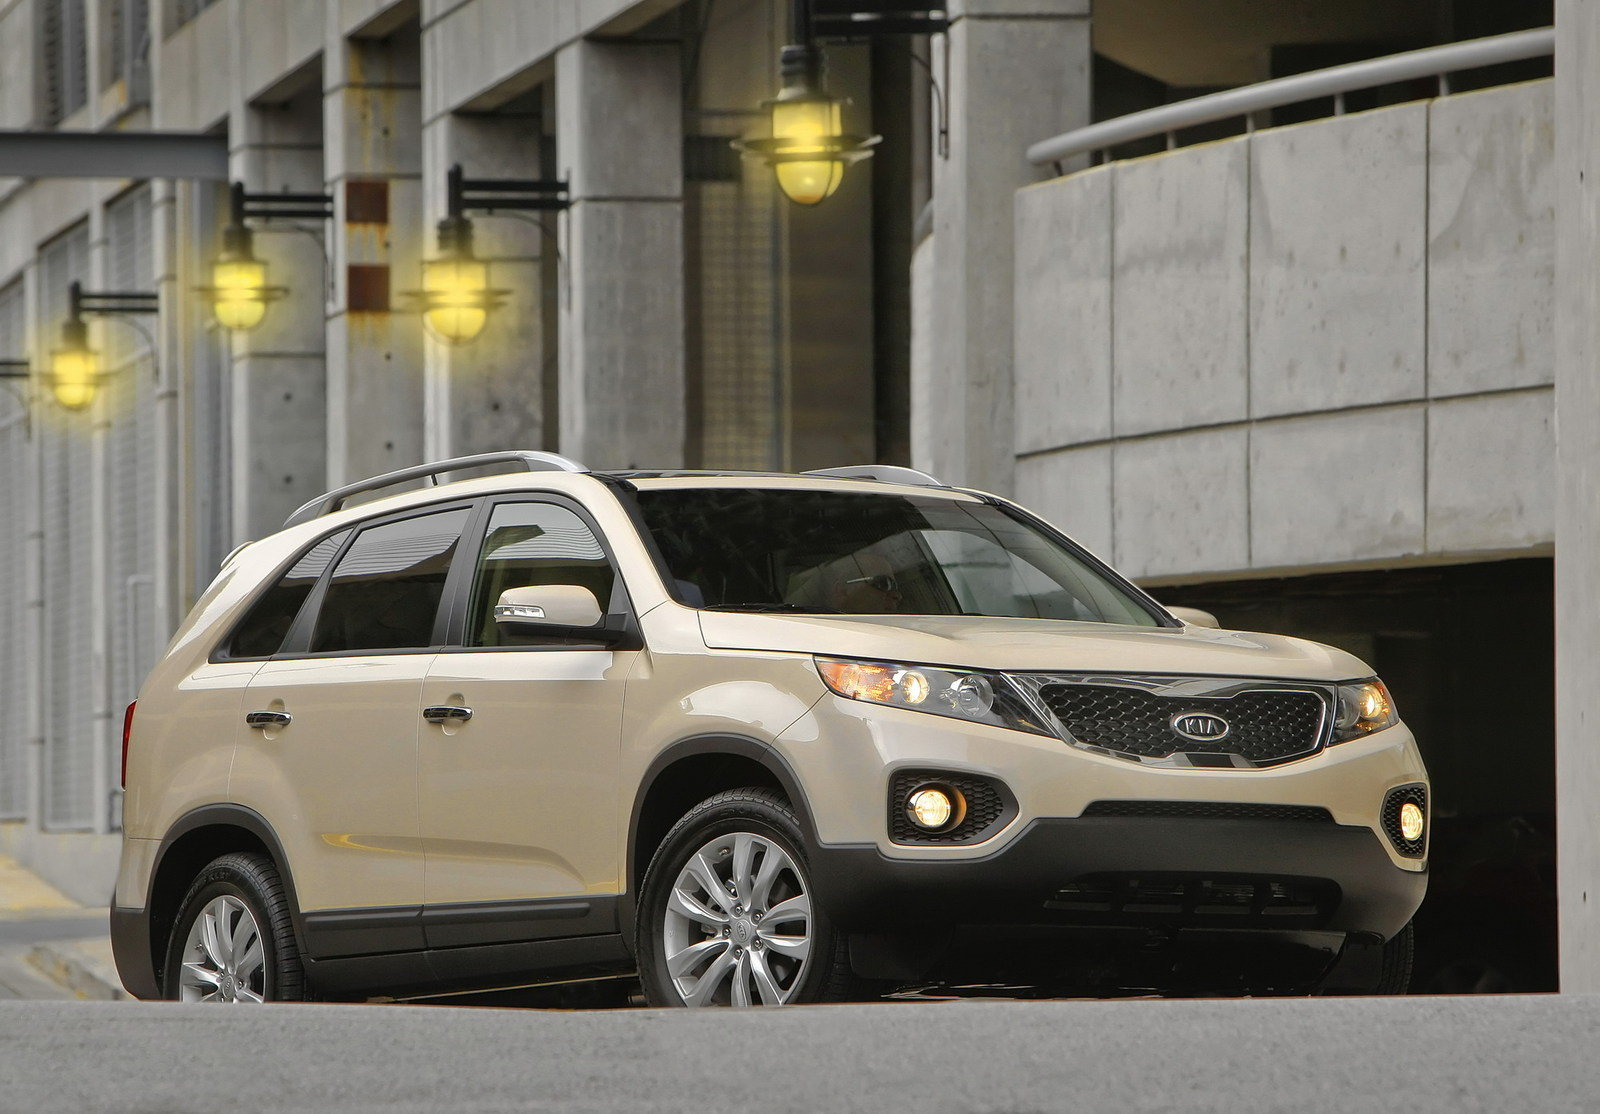 2011 kia sorento sx picture 353988 car review top speed. Black Bedroom Furniture Sets. Home Design Ideas